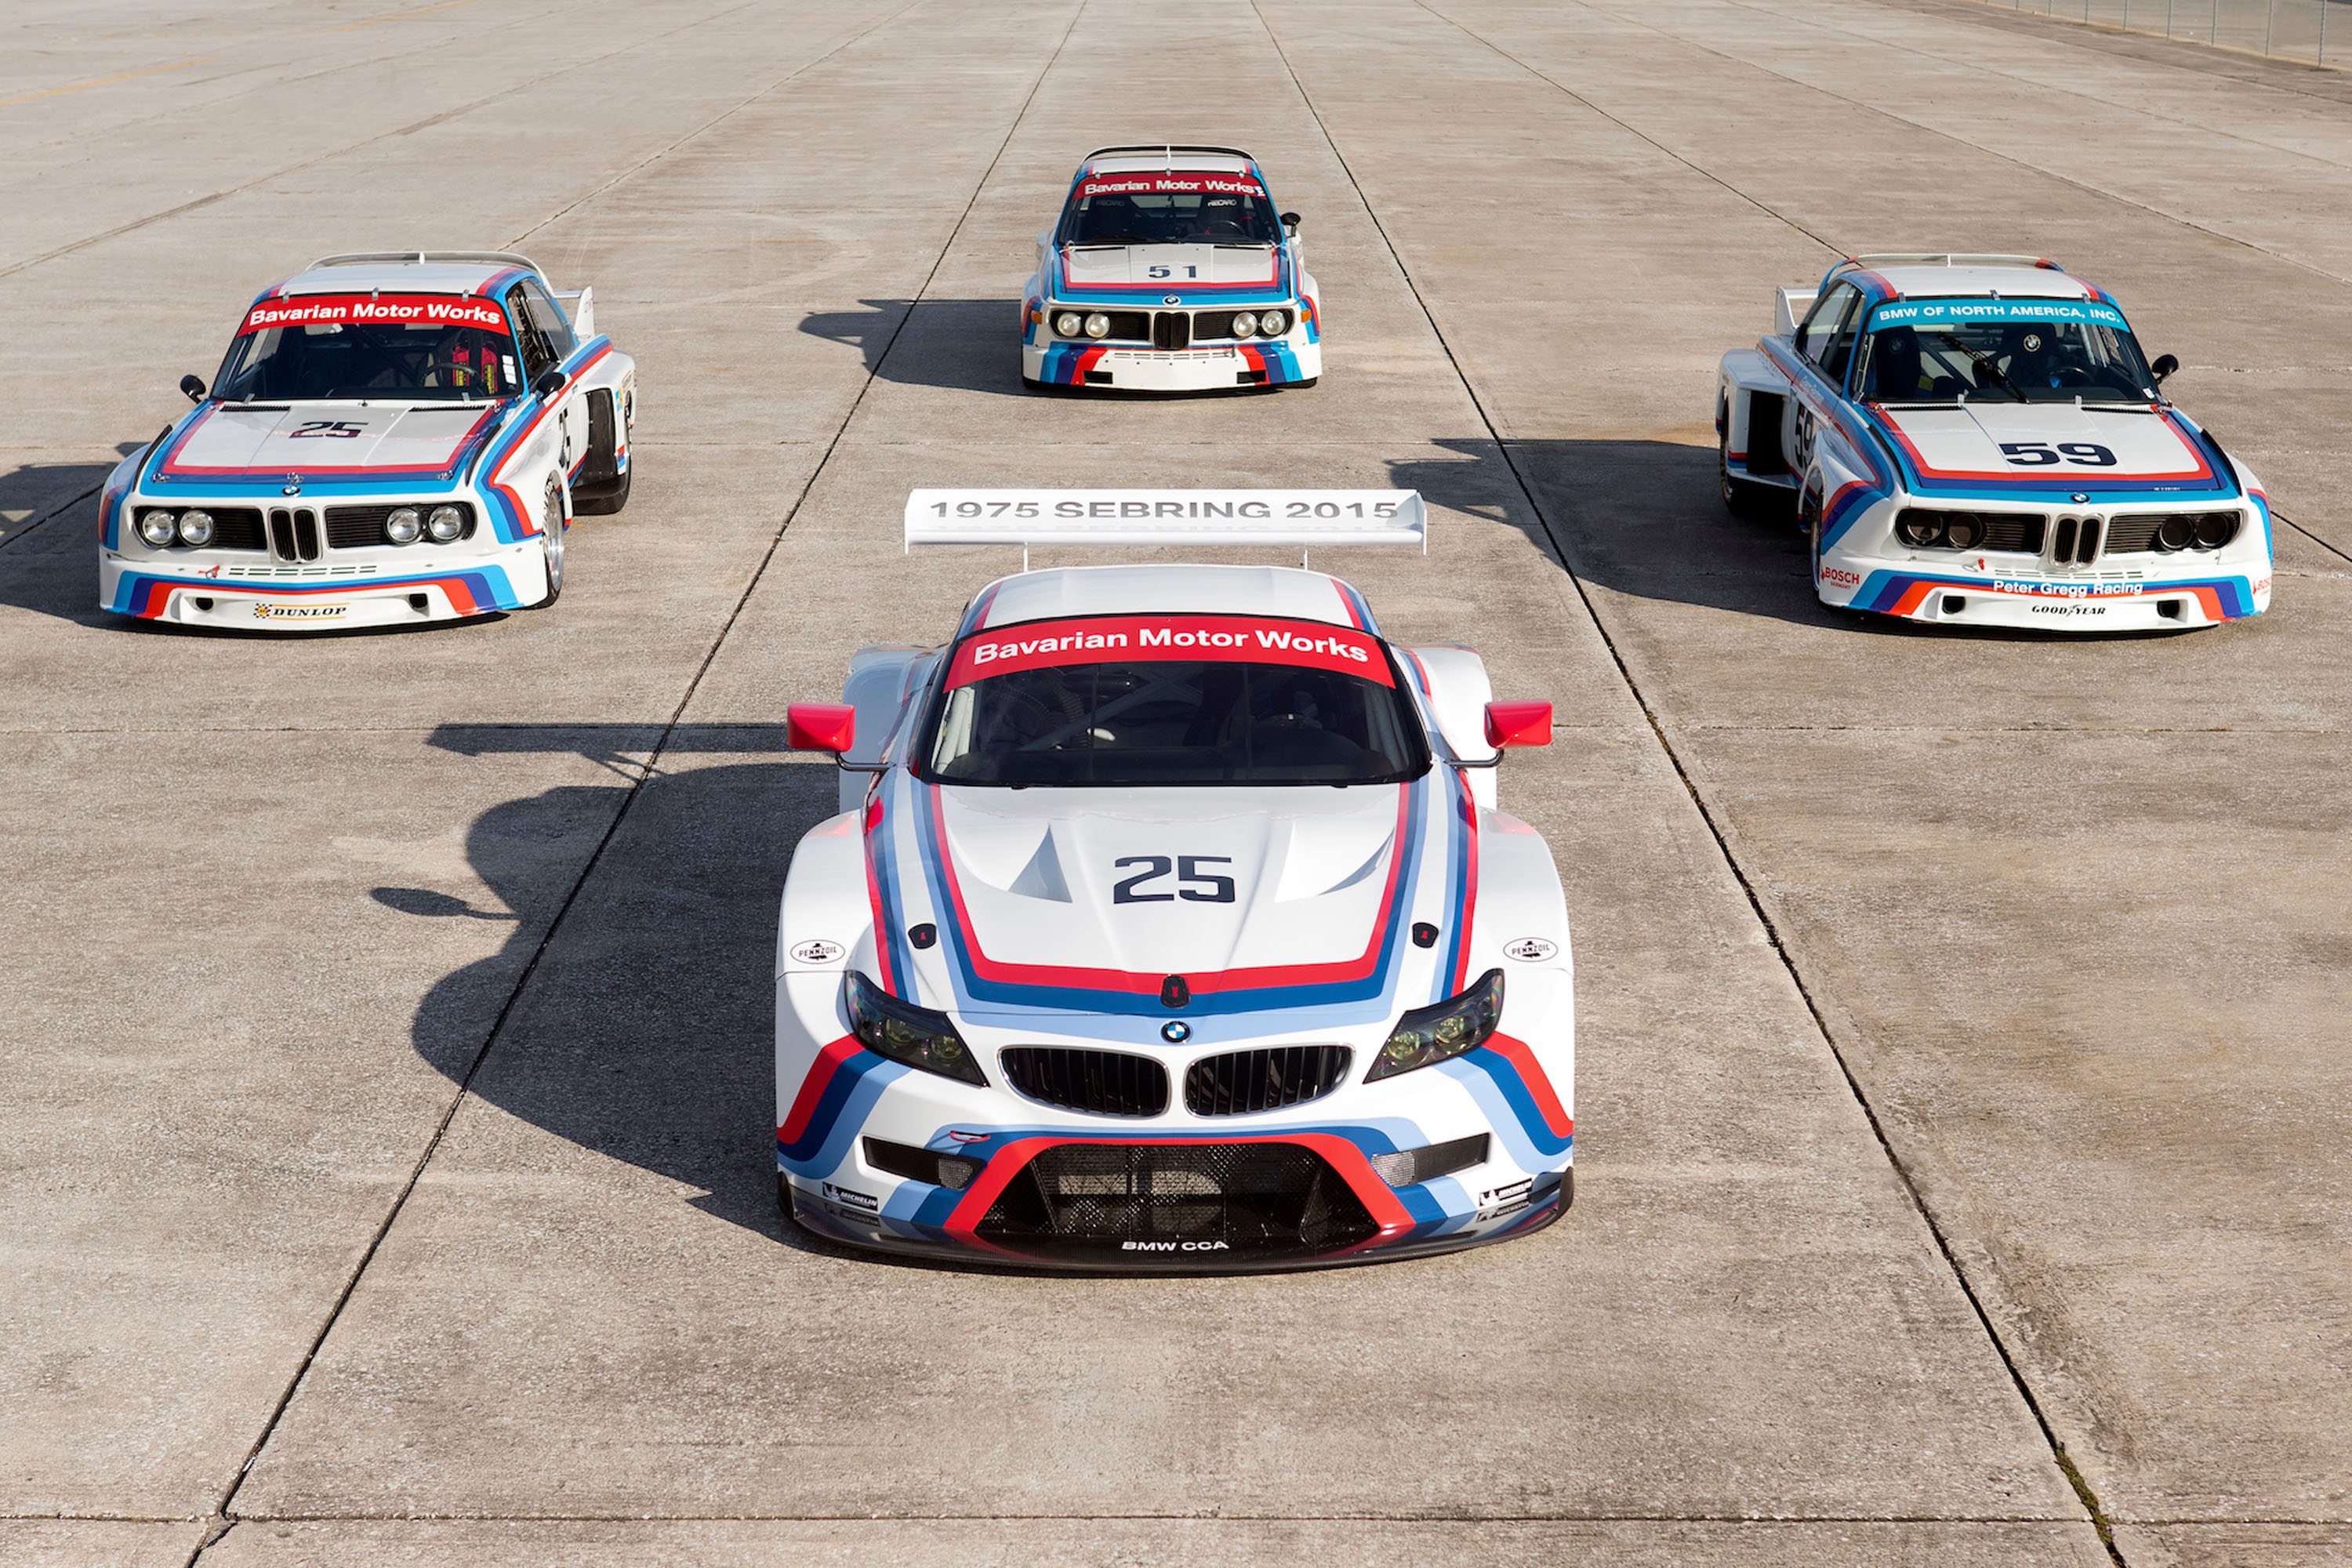 Awesome BMW Z4 GTLM livery honors famous IMSA 3.0 CSL